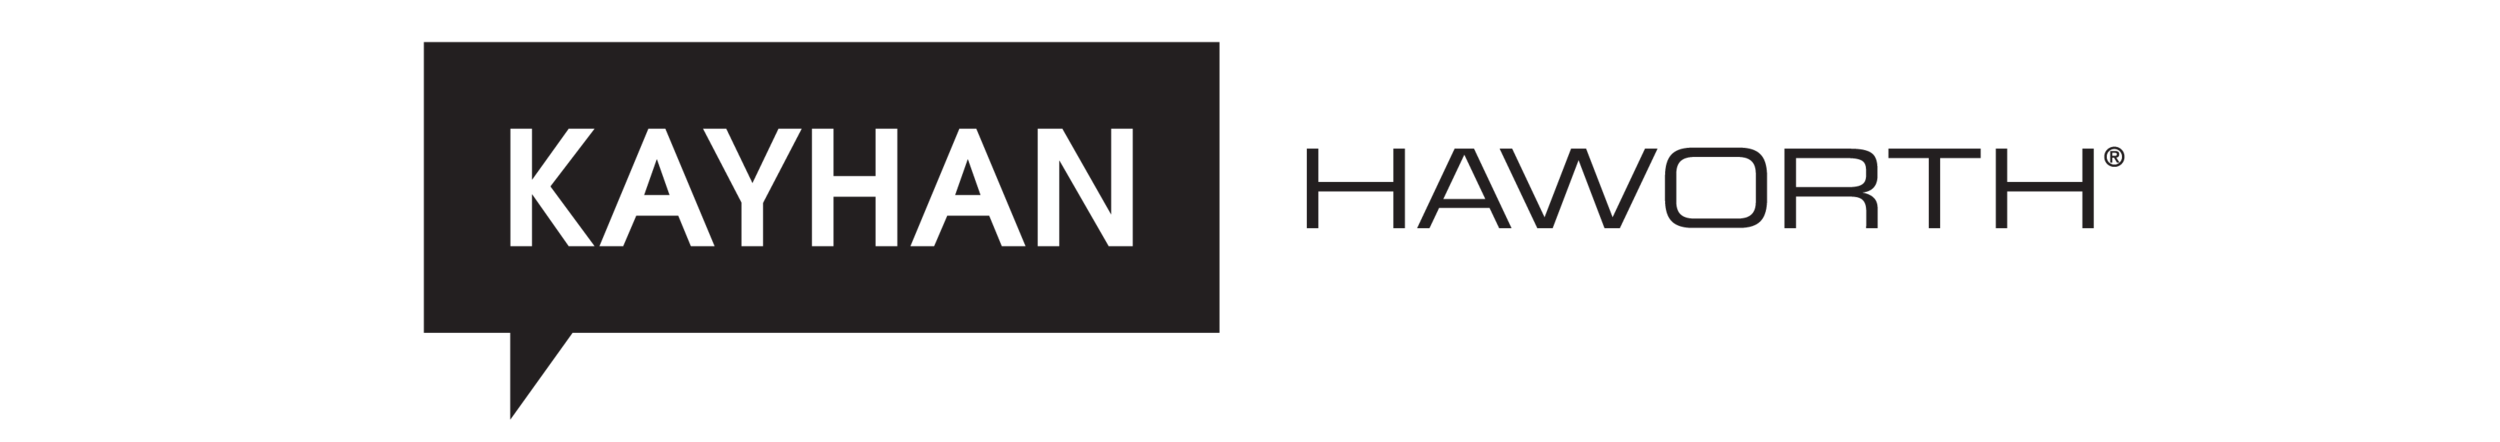 Haworth-Kayhan Logo_Black-01.png